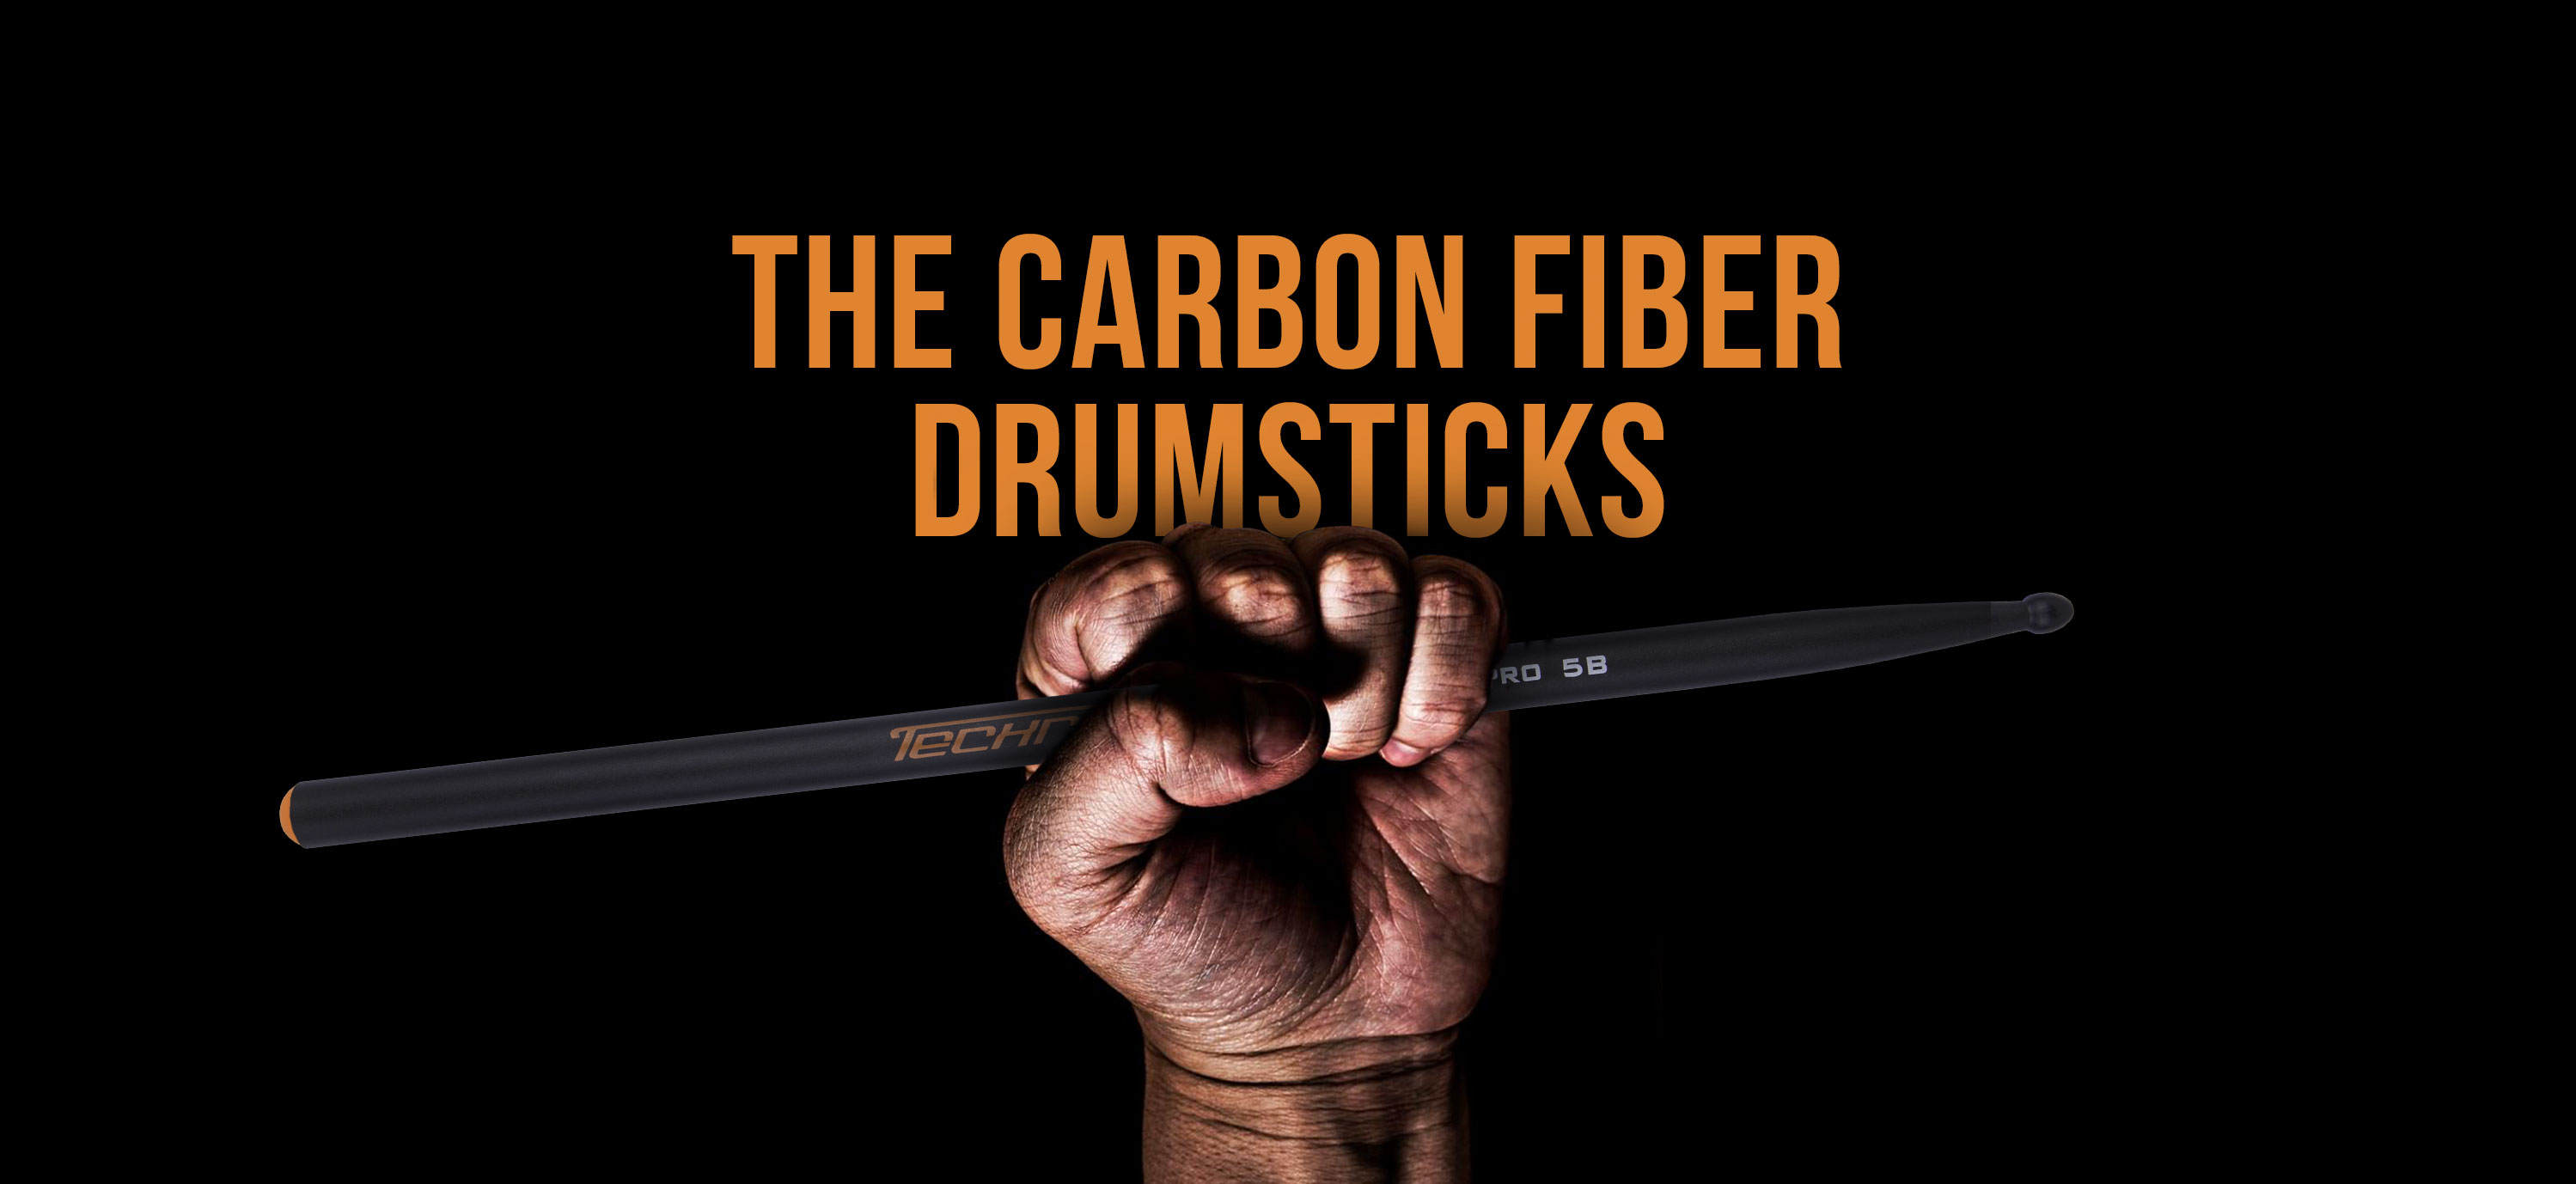 The Carbon Fiber Drumsticks Techra